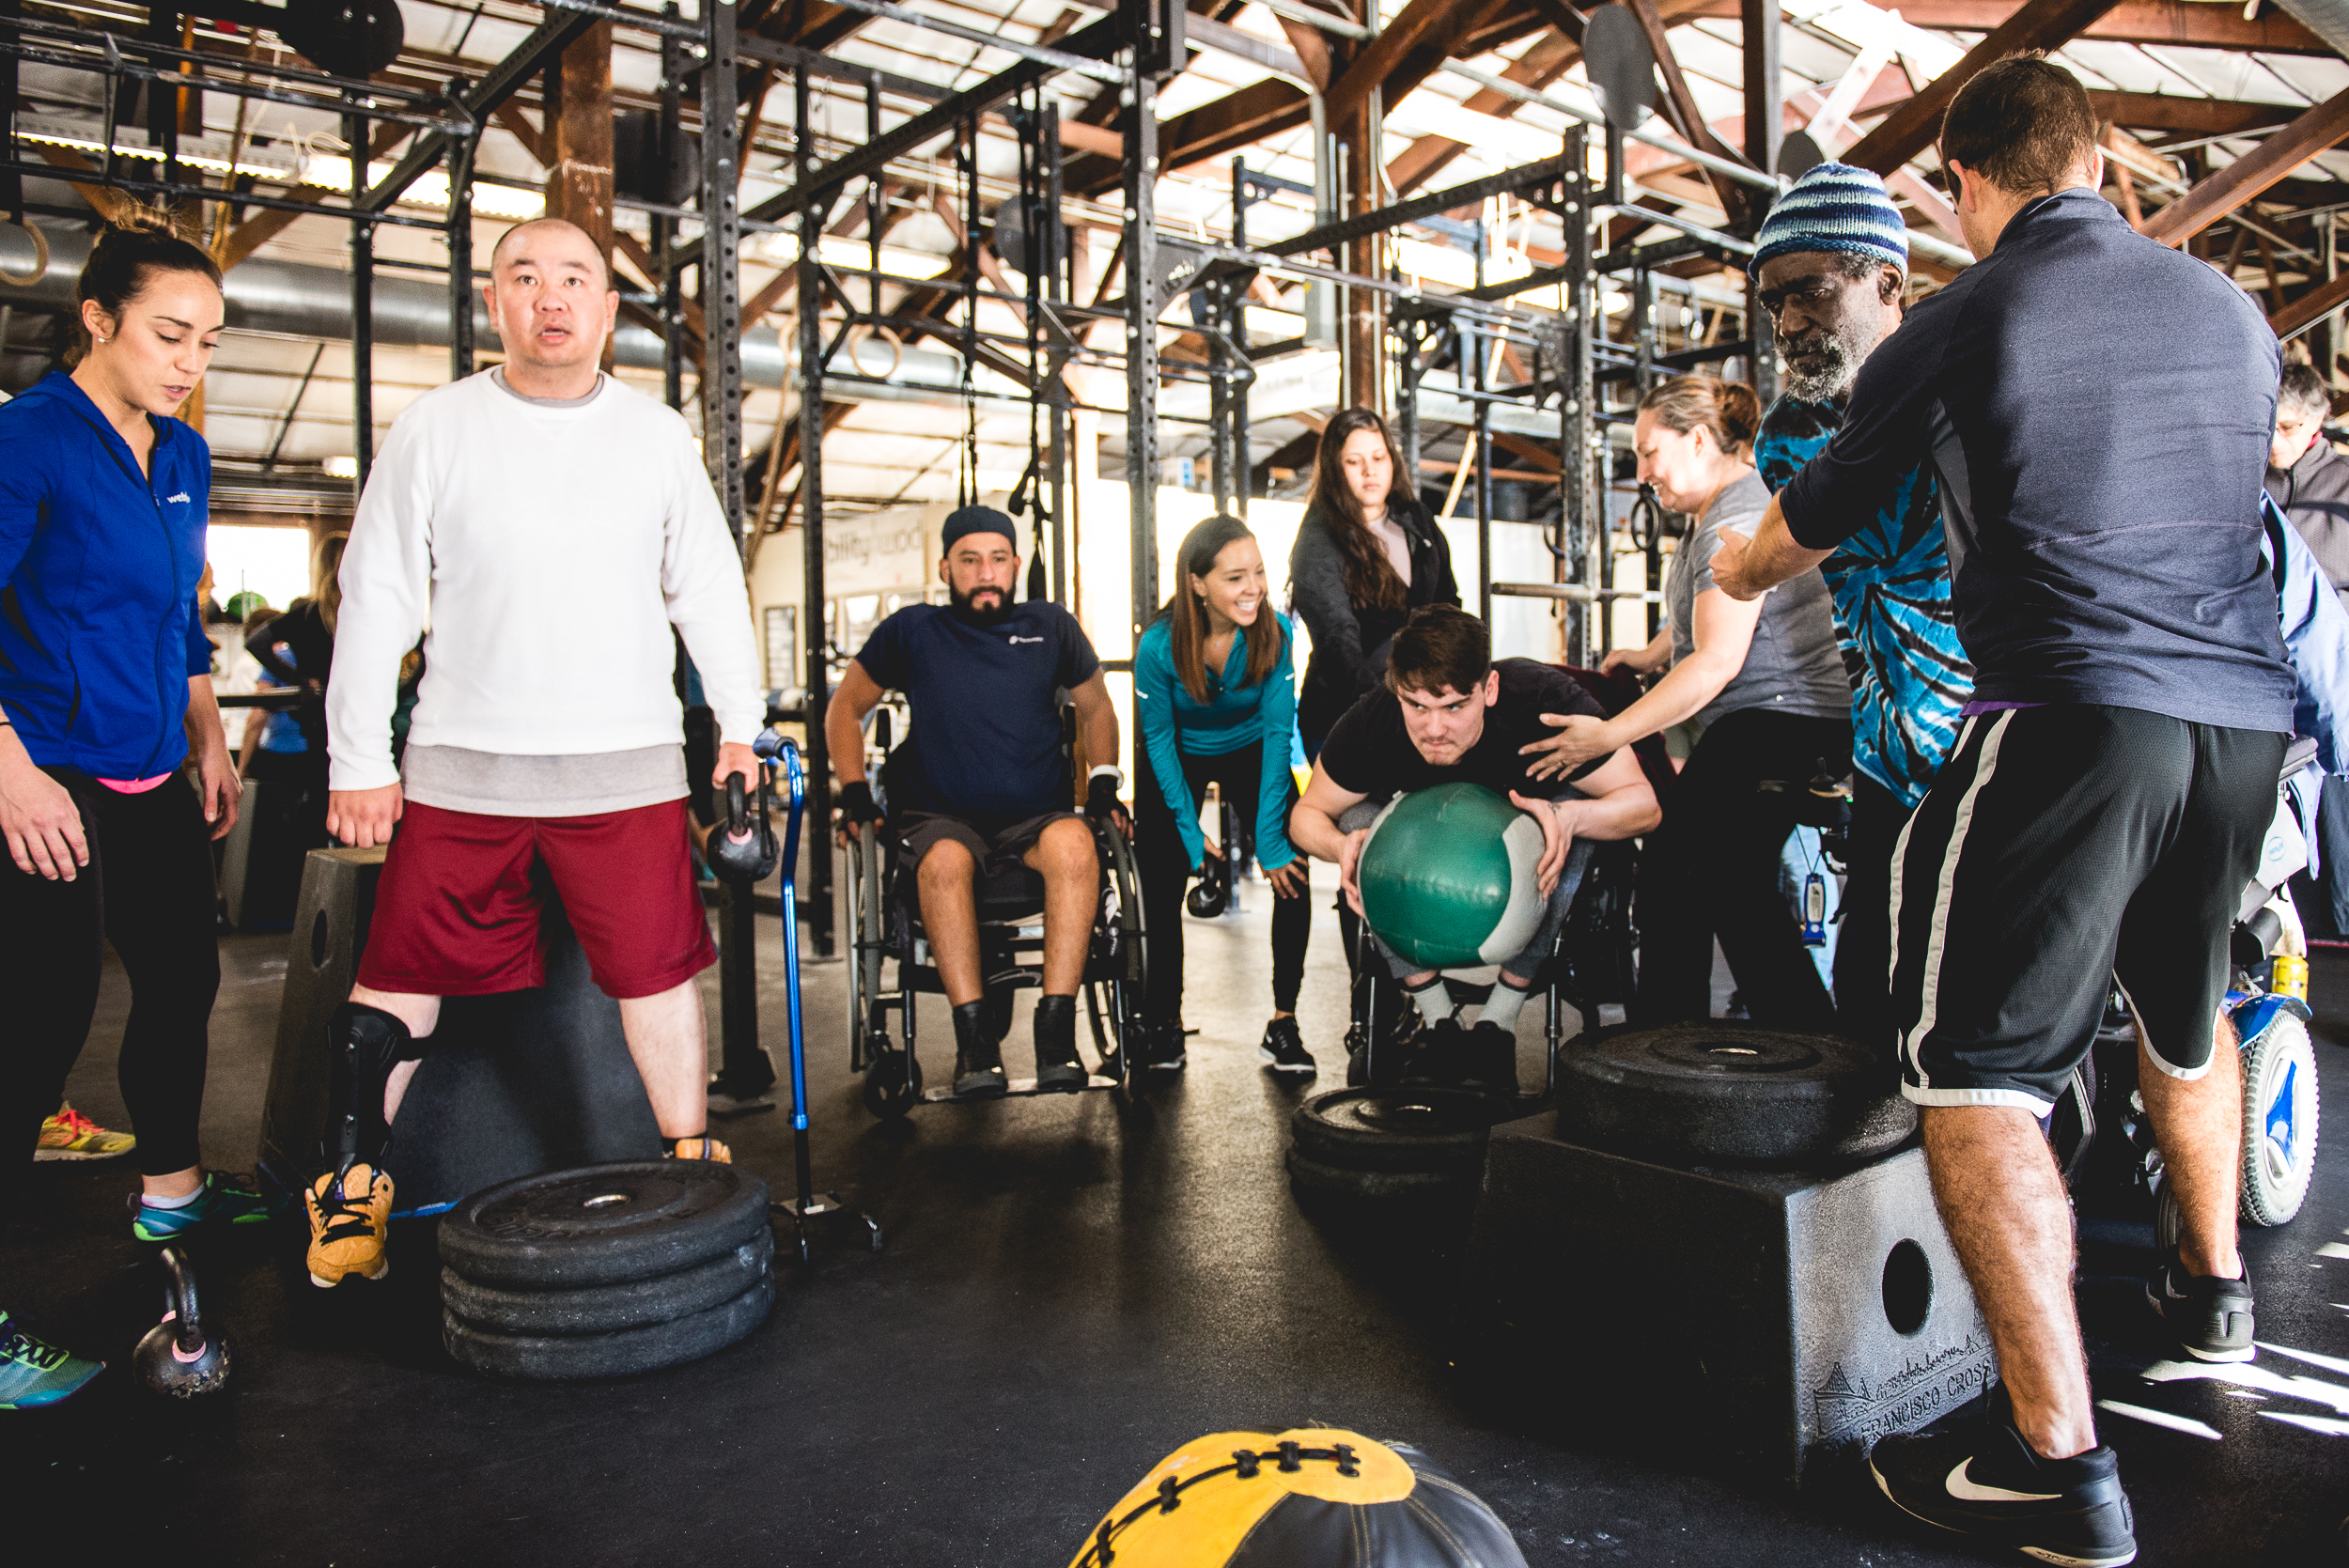 2017 Adaptive Athletic Clinic, Photo Alessio Neri-001-47.jpg